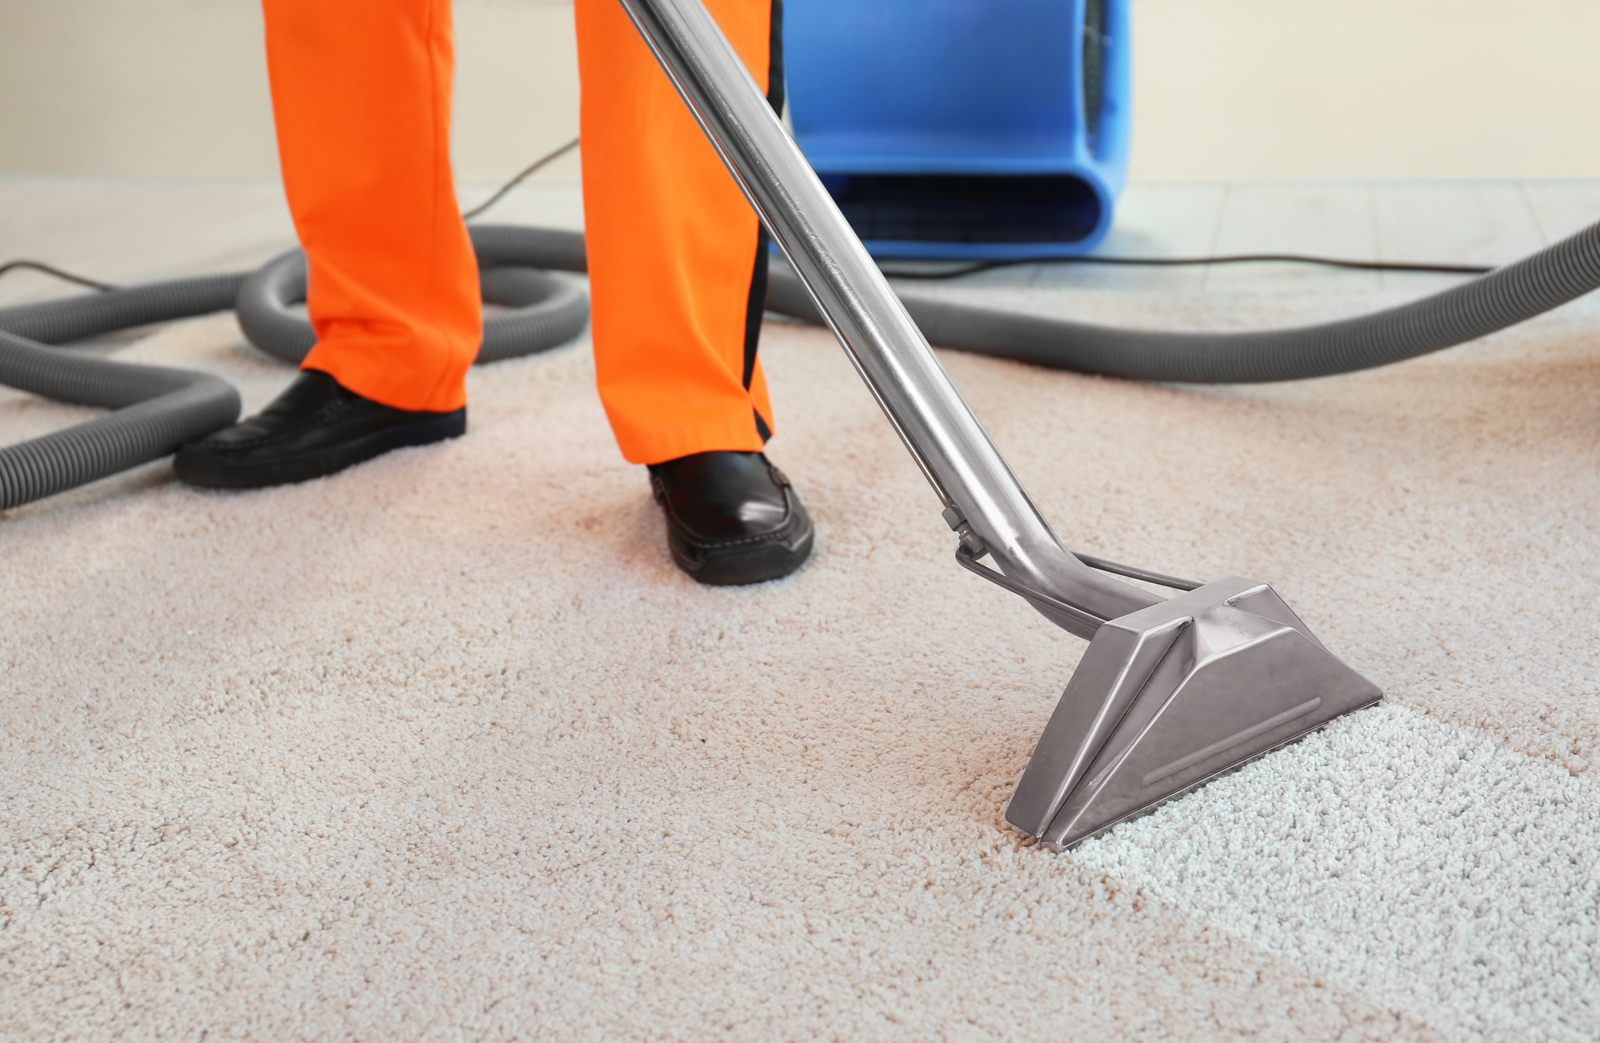 WINTER CARPET CLEANING SPECIALISTS IN NJ AND PA